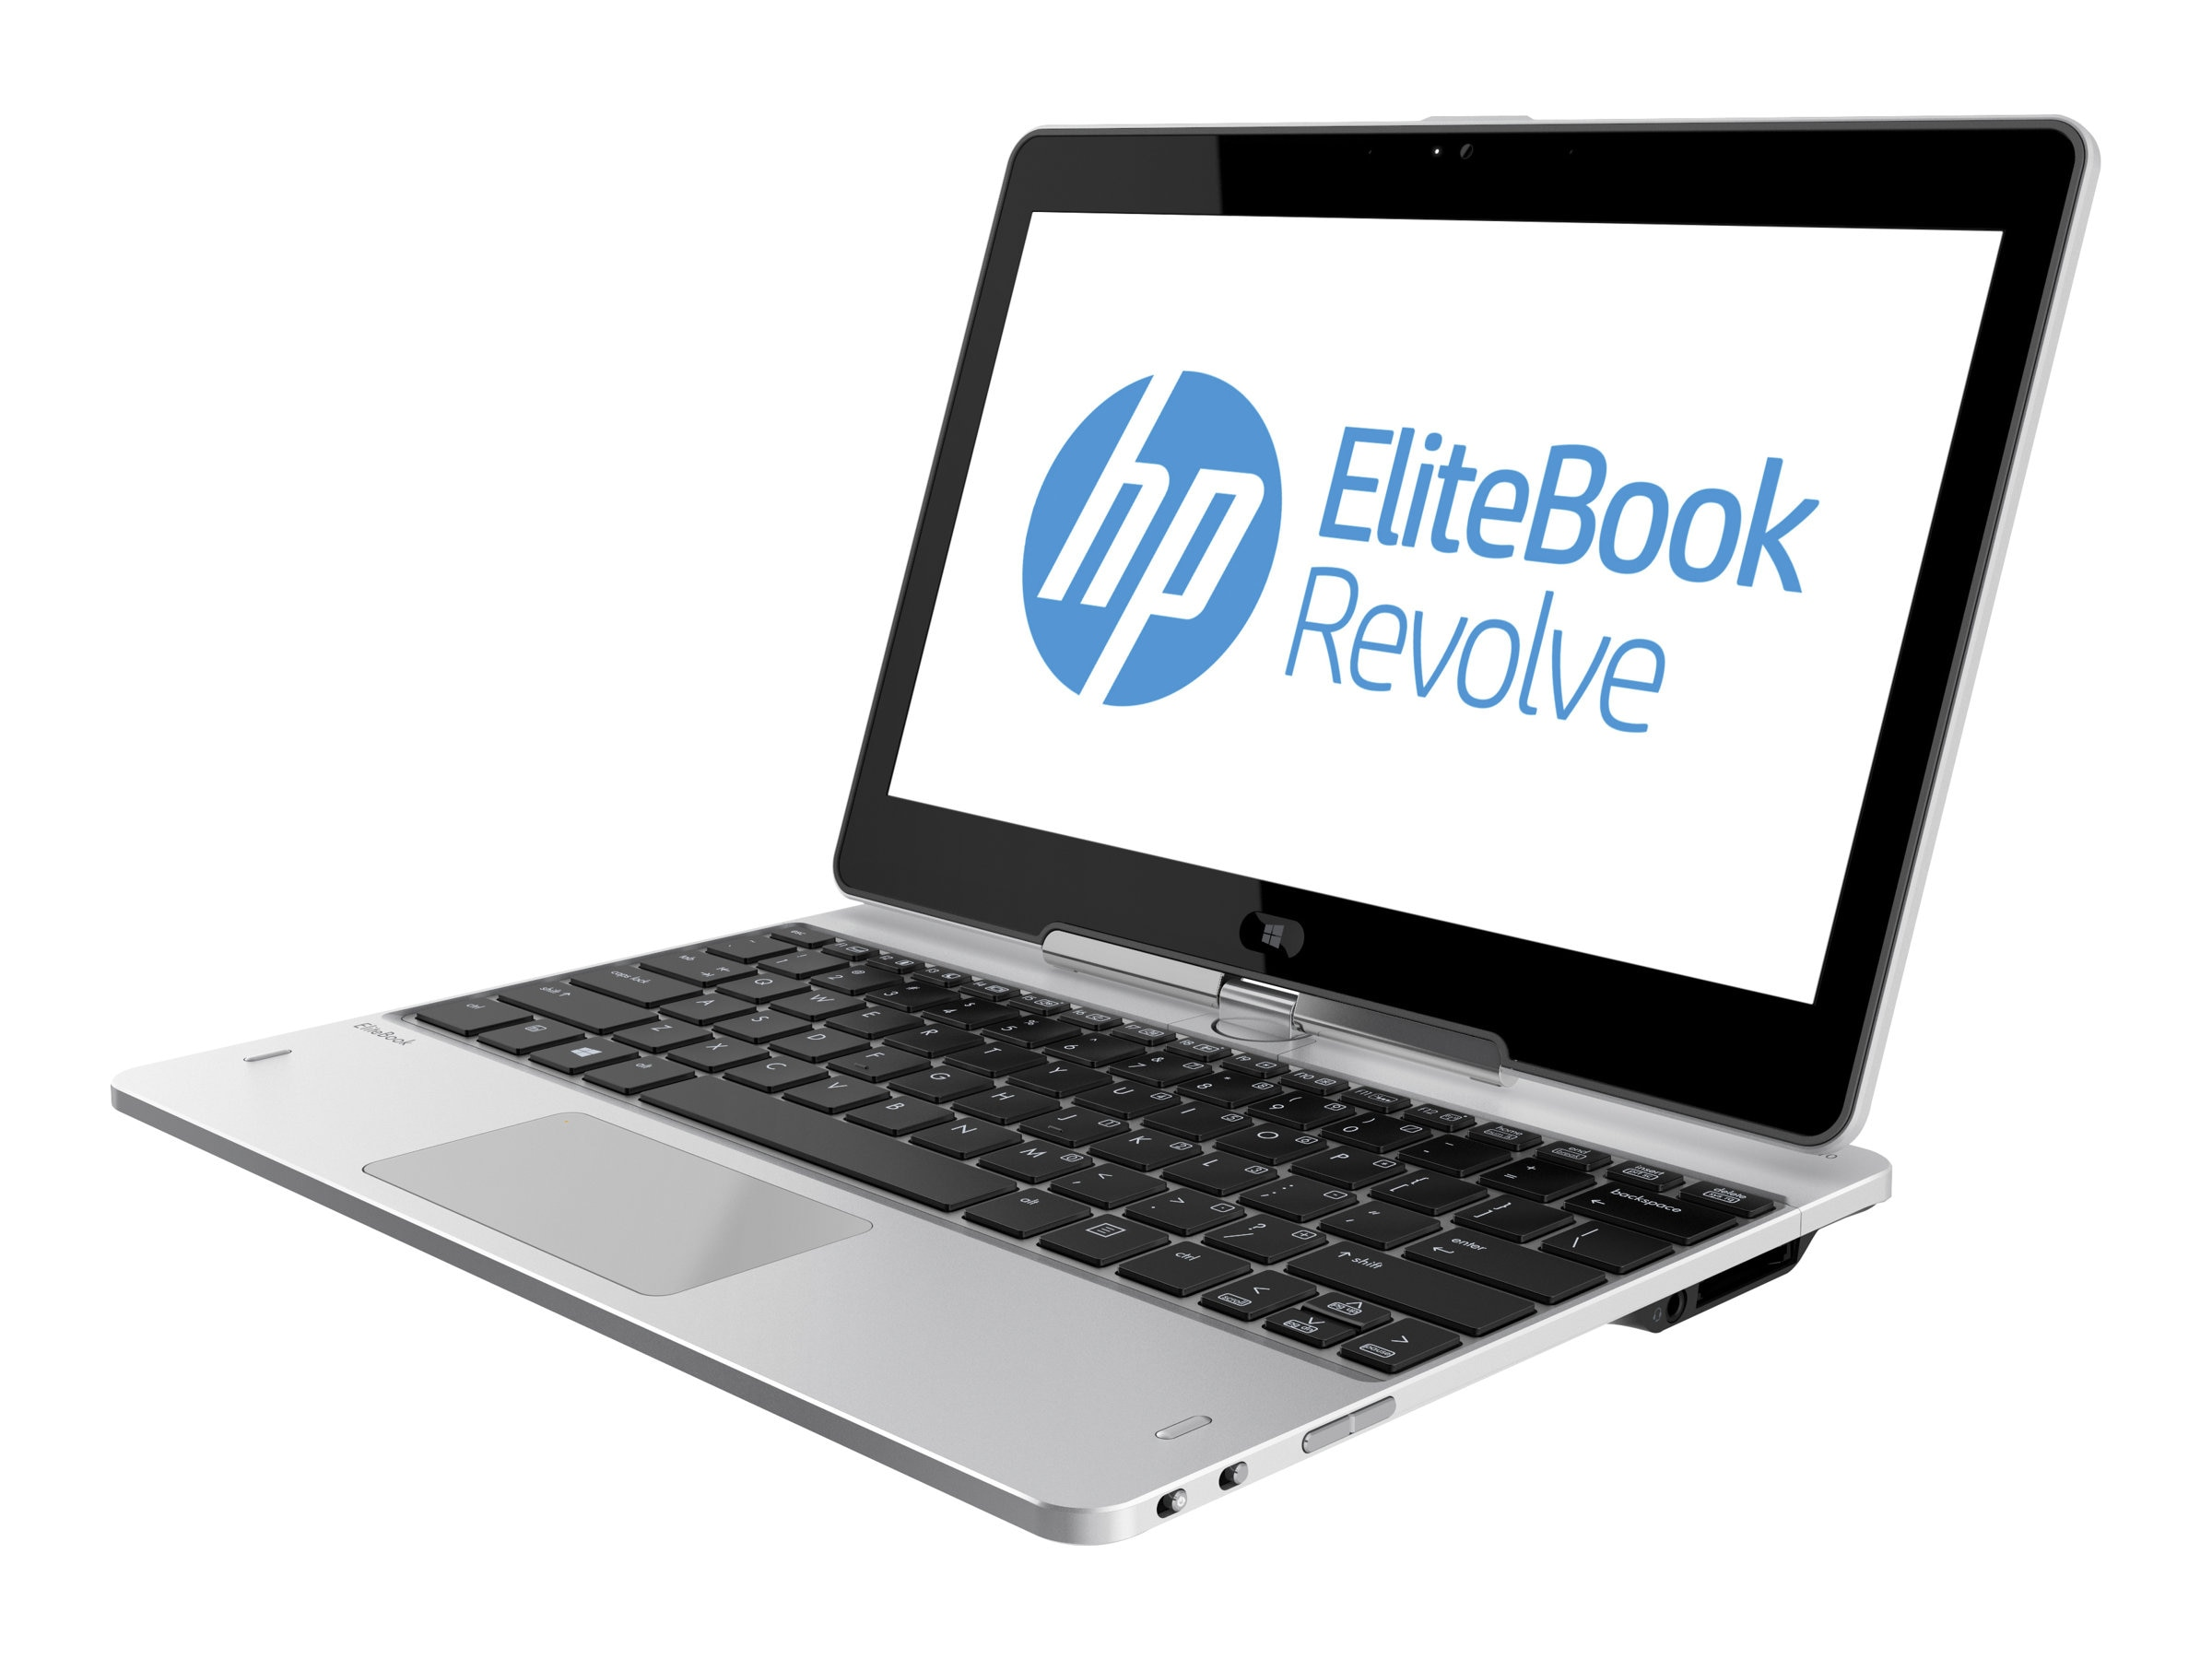 HP EliteBook Revolve 810 Core i5-3437U 1.9GHz 4GB 256GB SSD abgn NIC BT 56k WC 11.6 HD MT W7P64